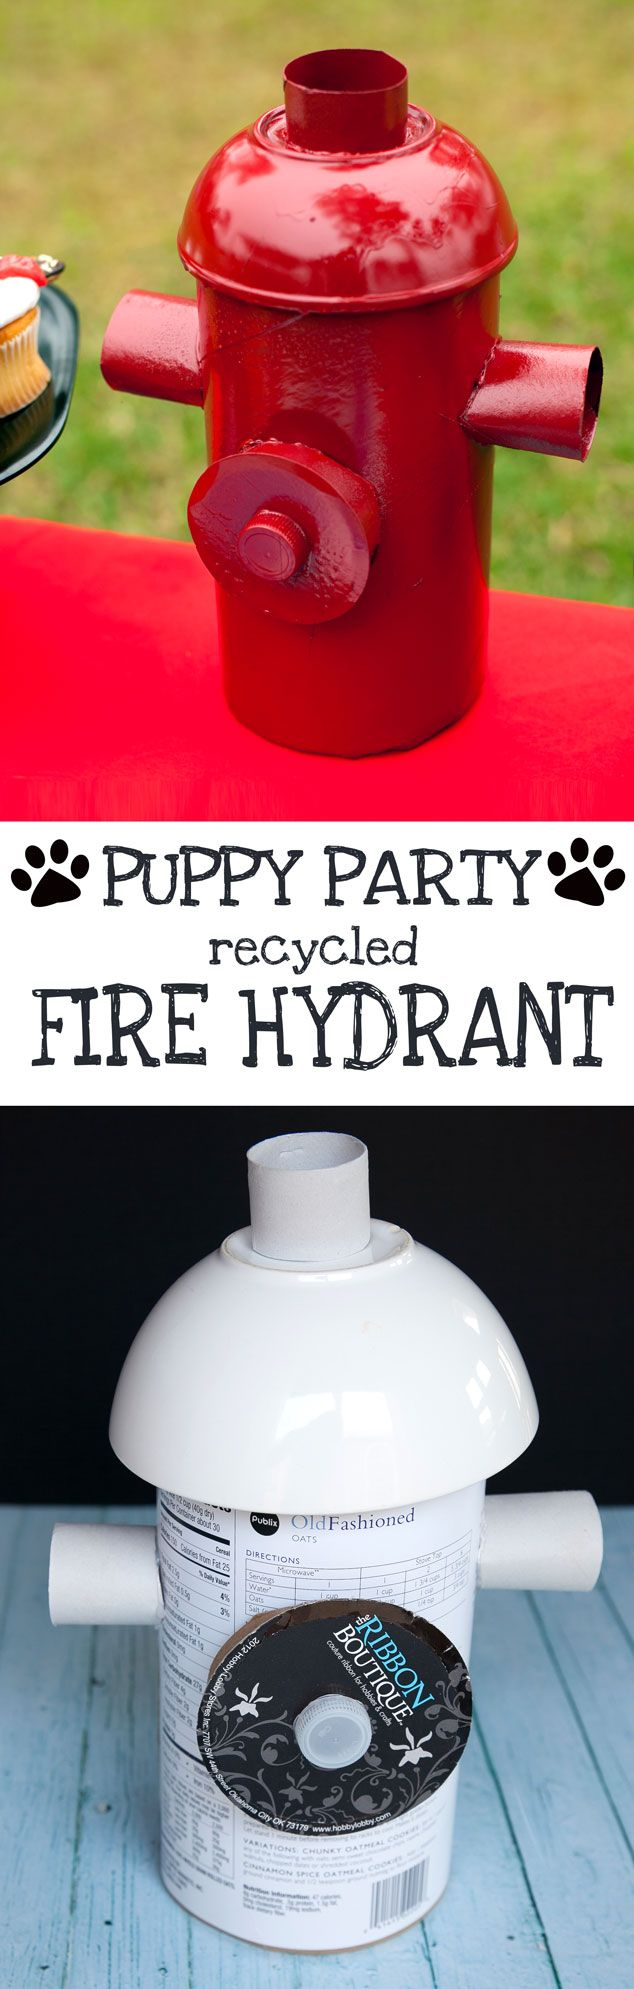 DIY Puppy Party Fire Hydrant from Recyclables